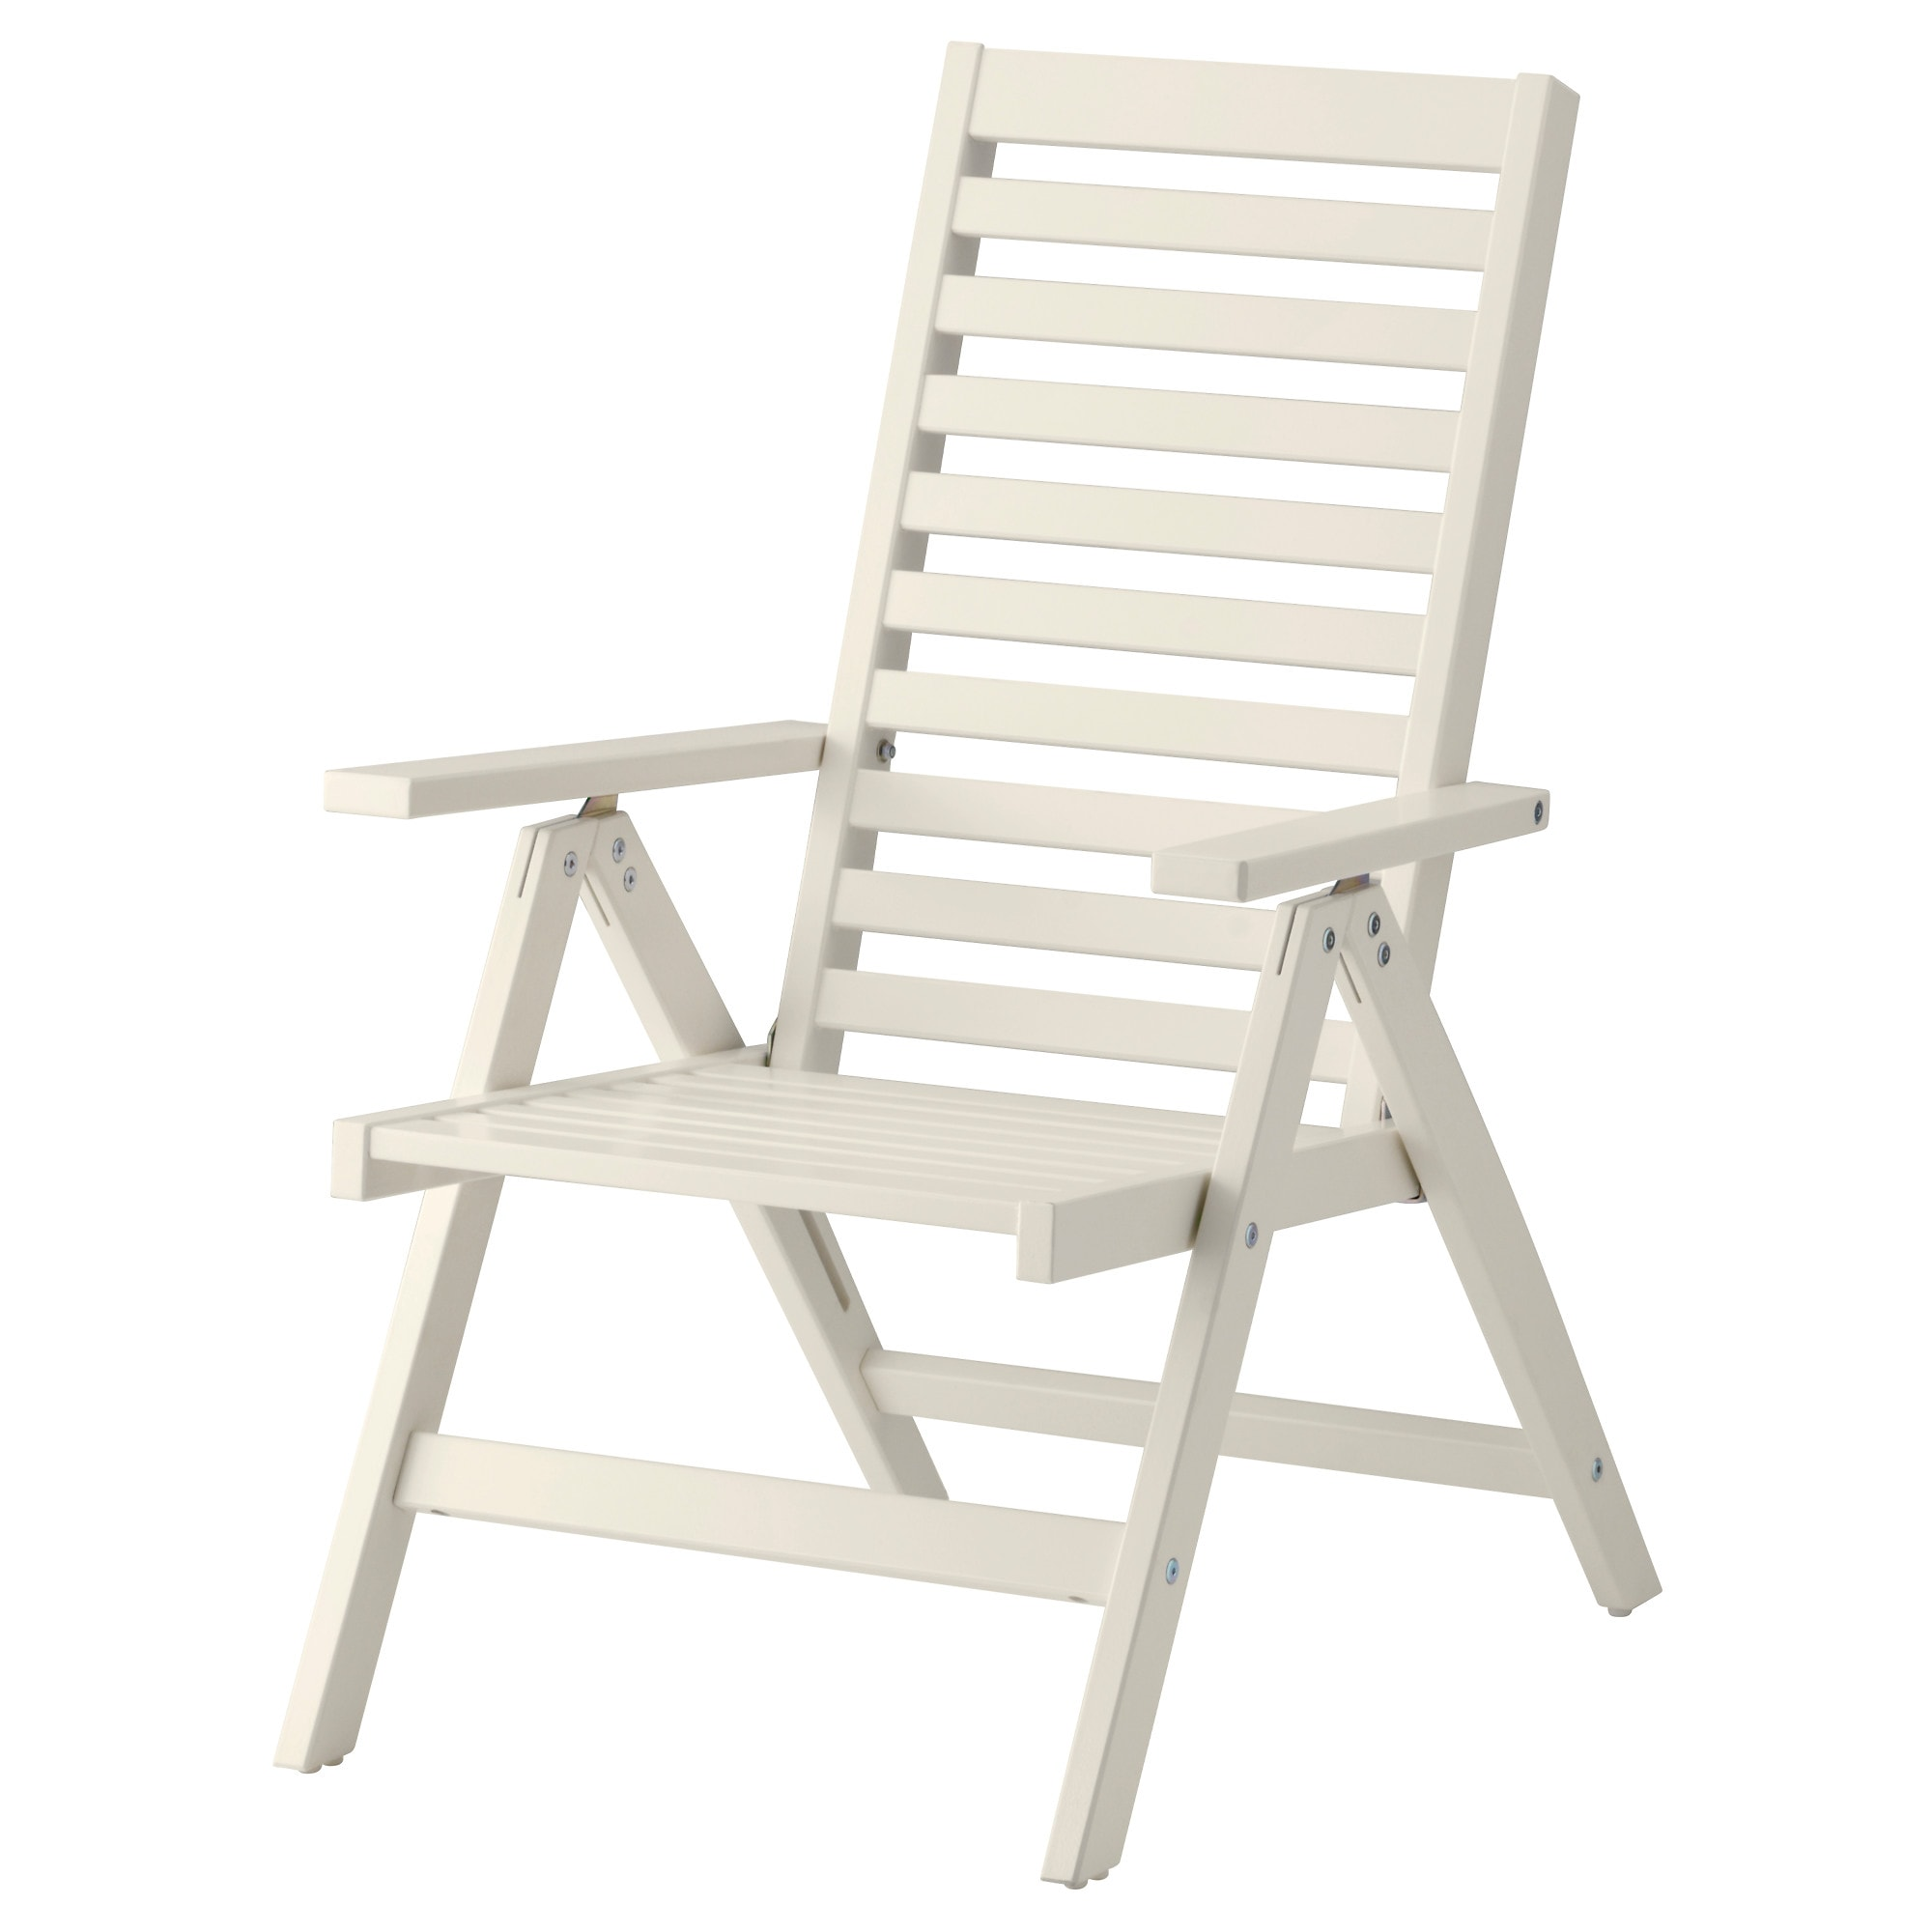 sc 1 st  Ikea & ÄPPLARÖ Reclining chair outdoor - foldable white - IKEA islam-shia.org